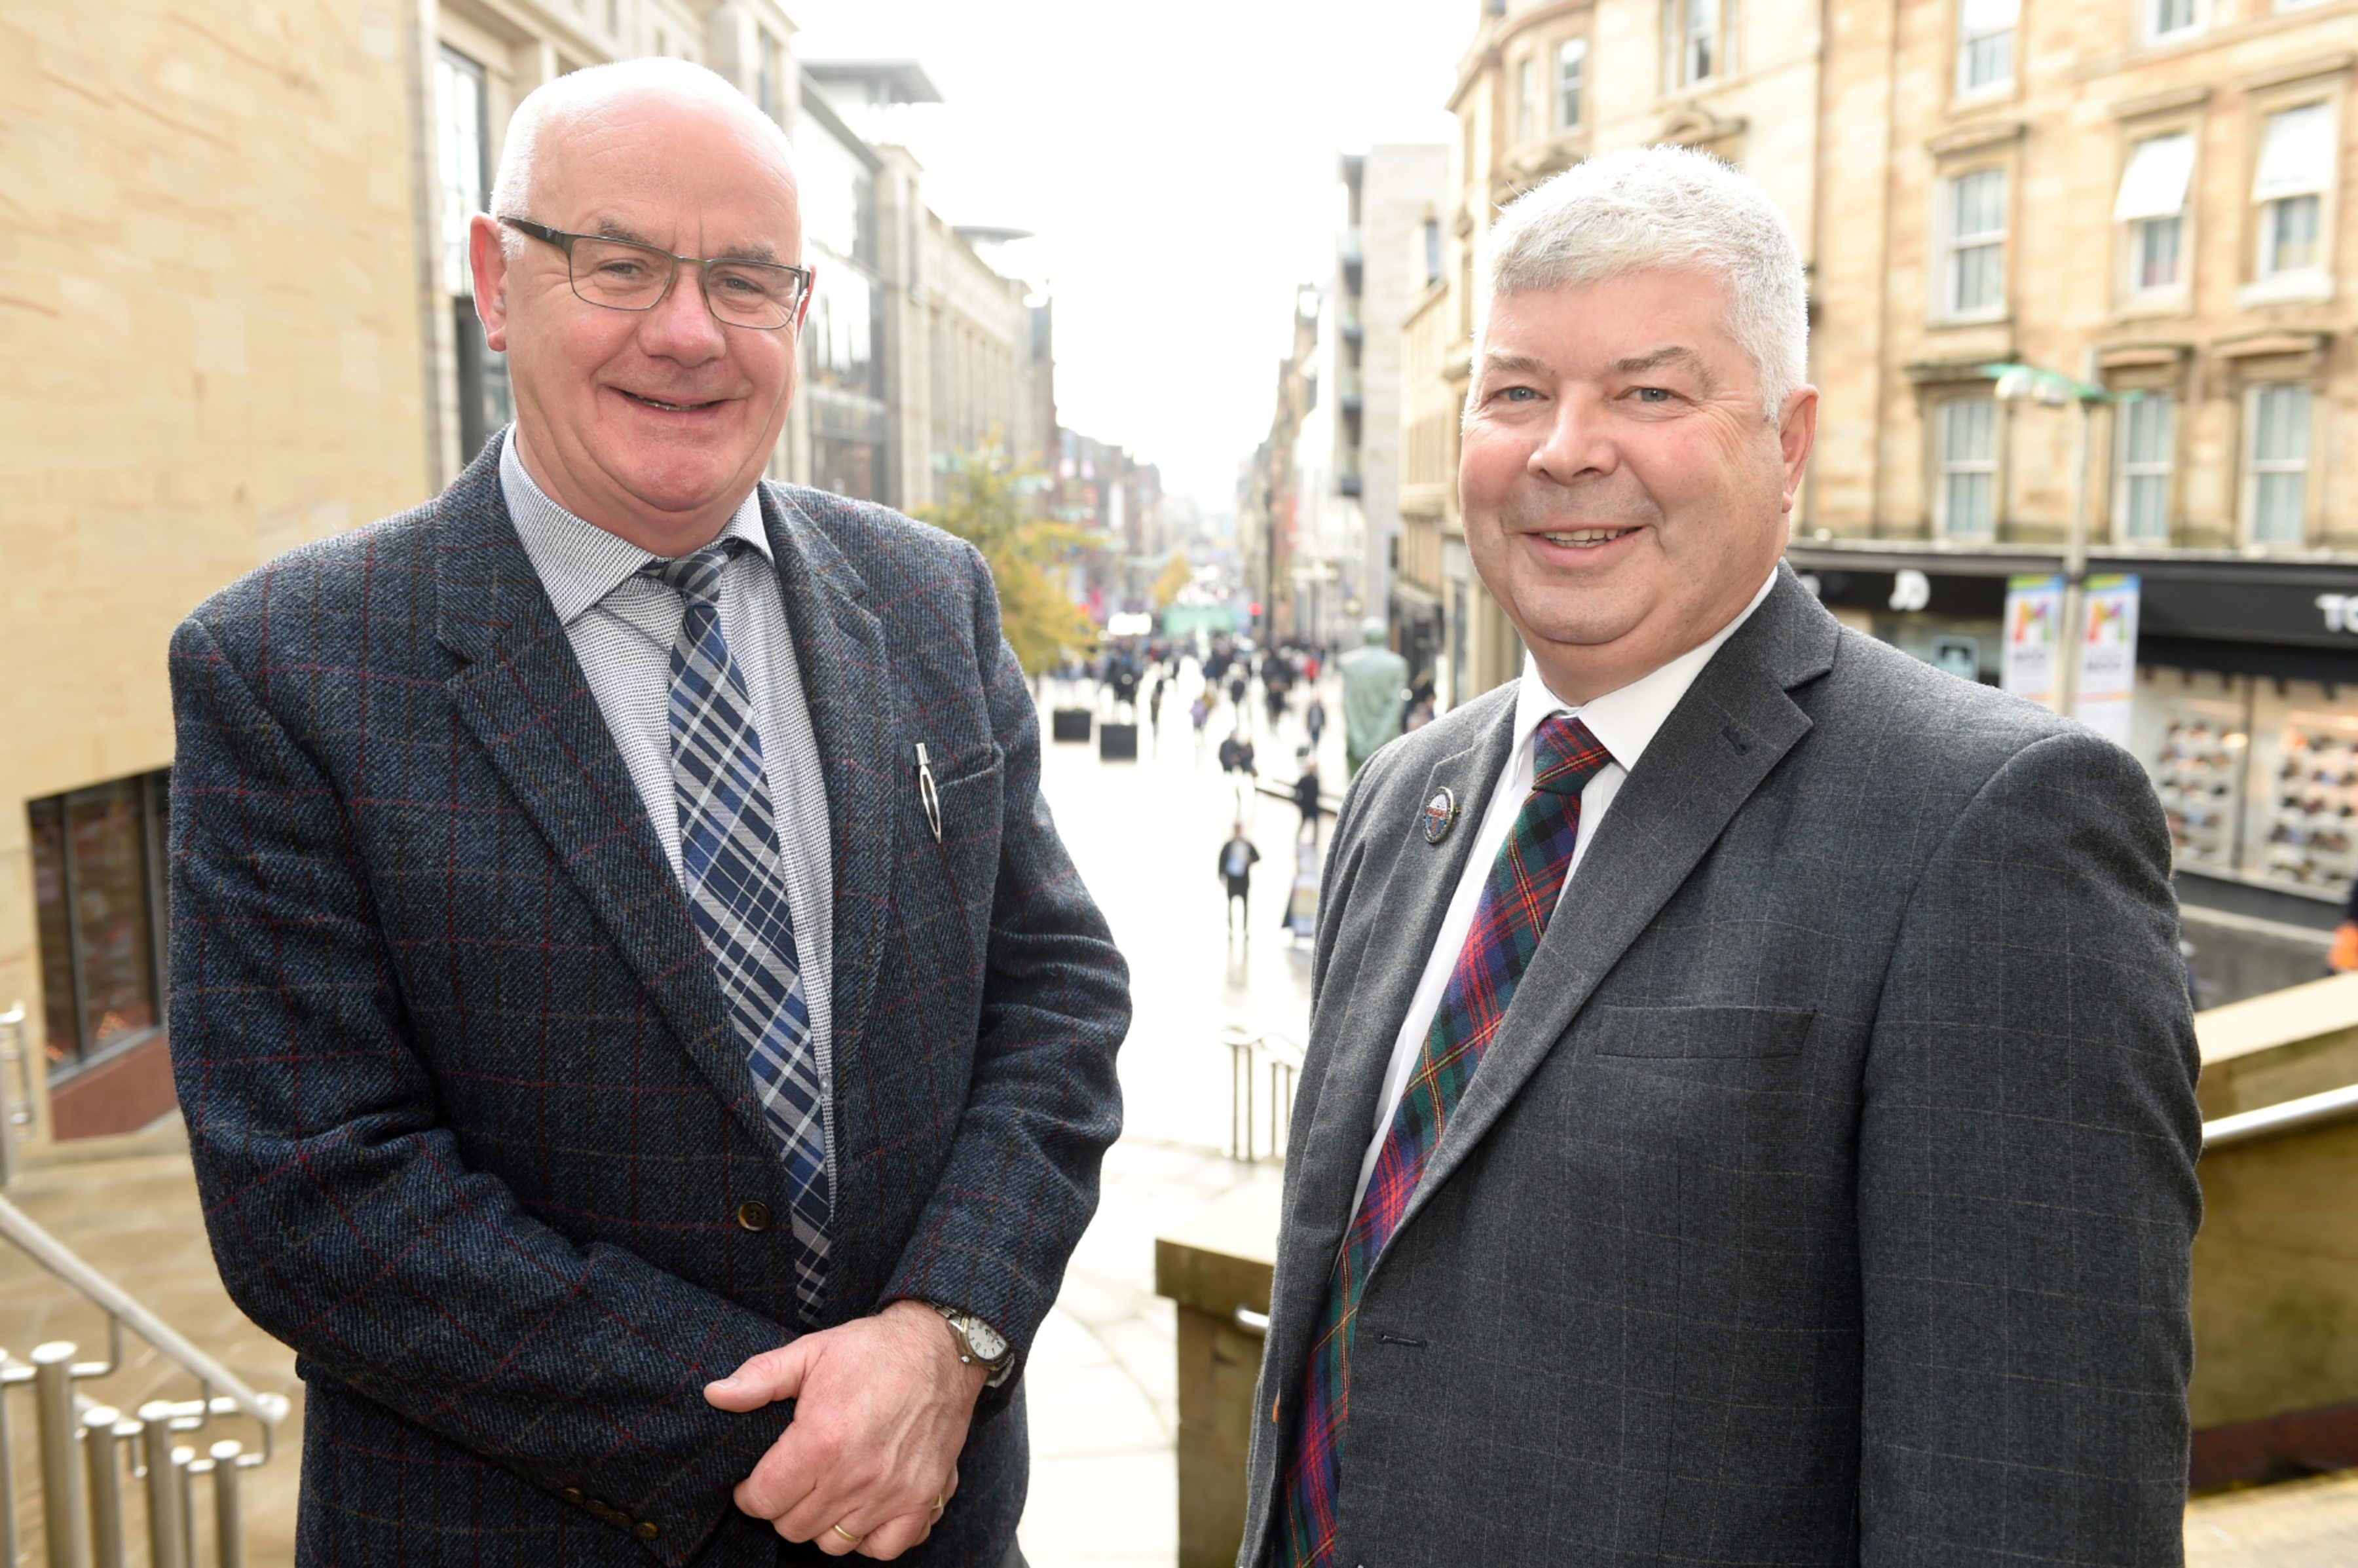 Alister Mackinnon of Highland Council (left) and Alisdair Barnett, Chairman of the local organising committee for next year's Royal National Mod in Inverness.  Picture by Sandy McCook.